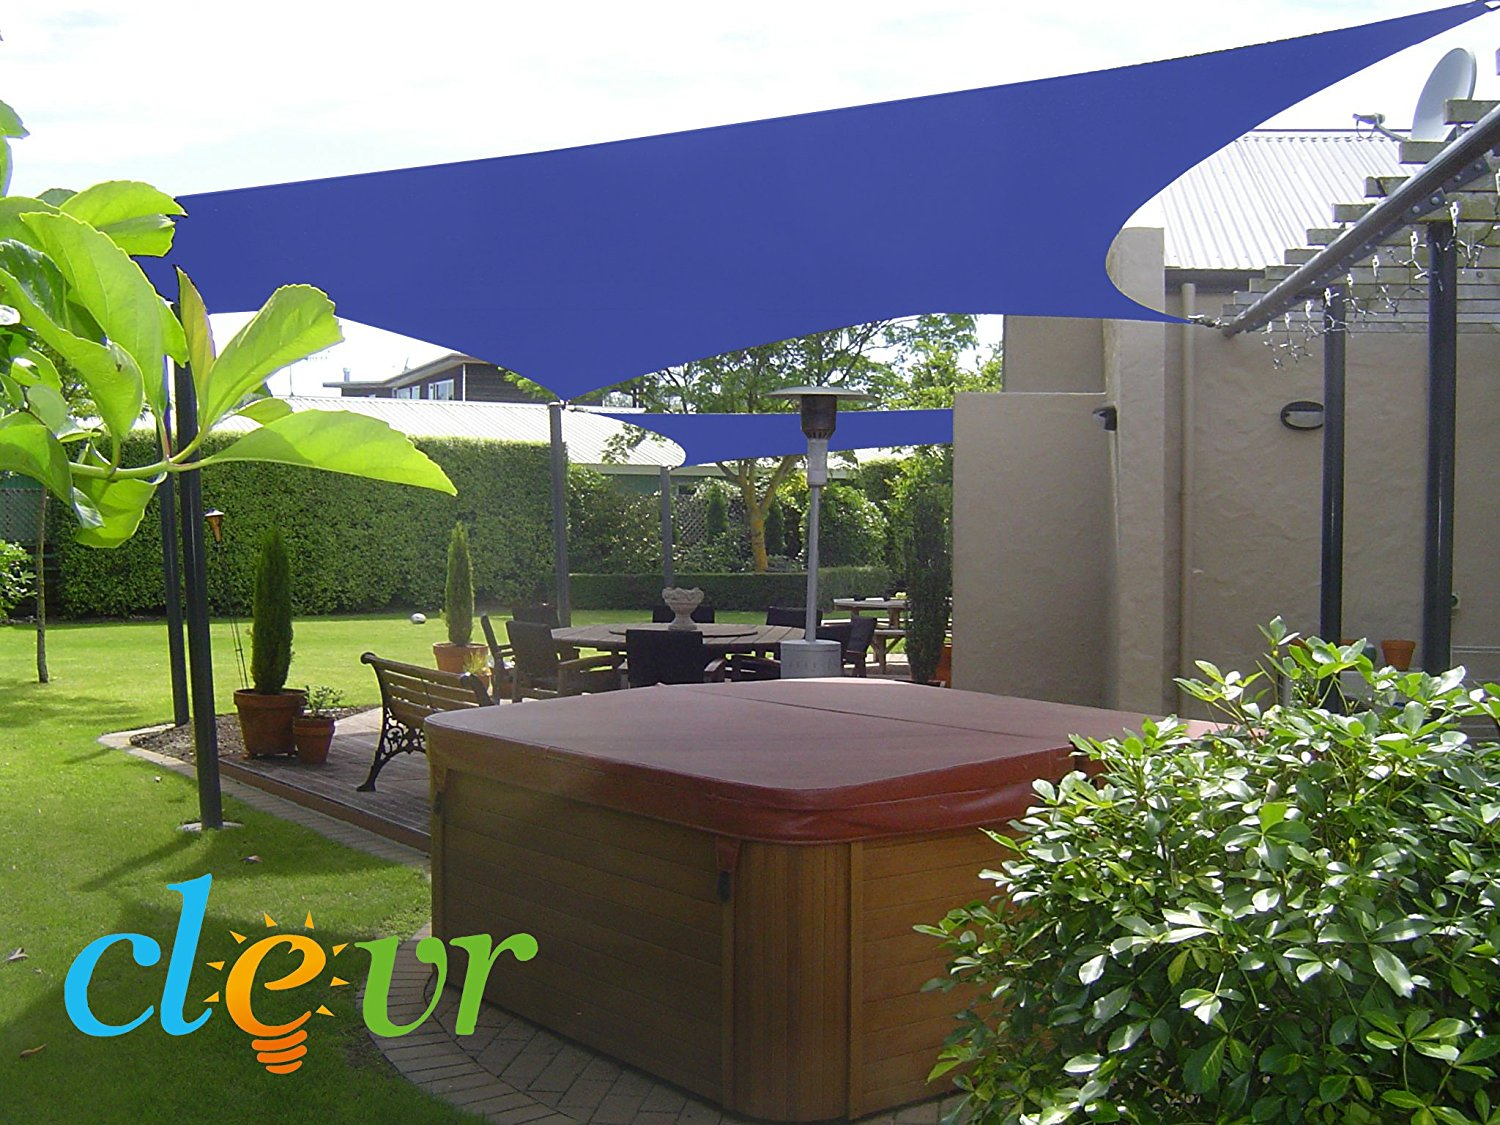 Superieur Get Quotations · New Premium Clevr Sun Shade Canopy Sail 13u0027X10u0027 Rectangle  UV Outdoor Patio Blue